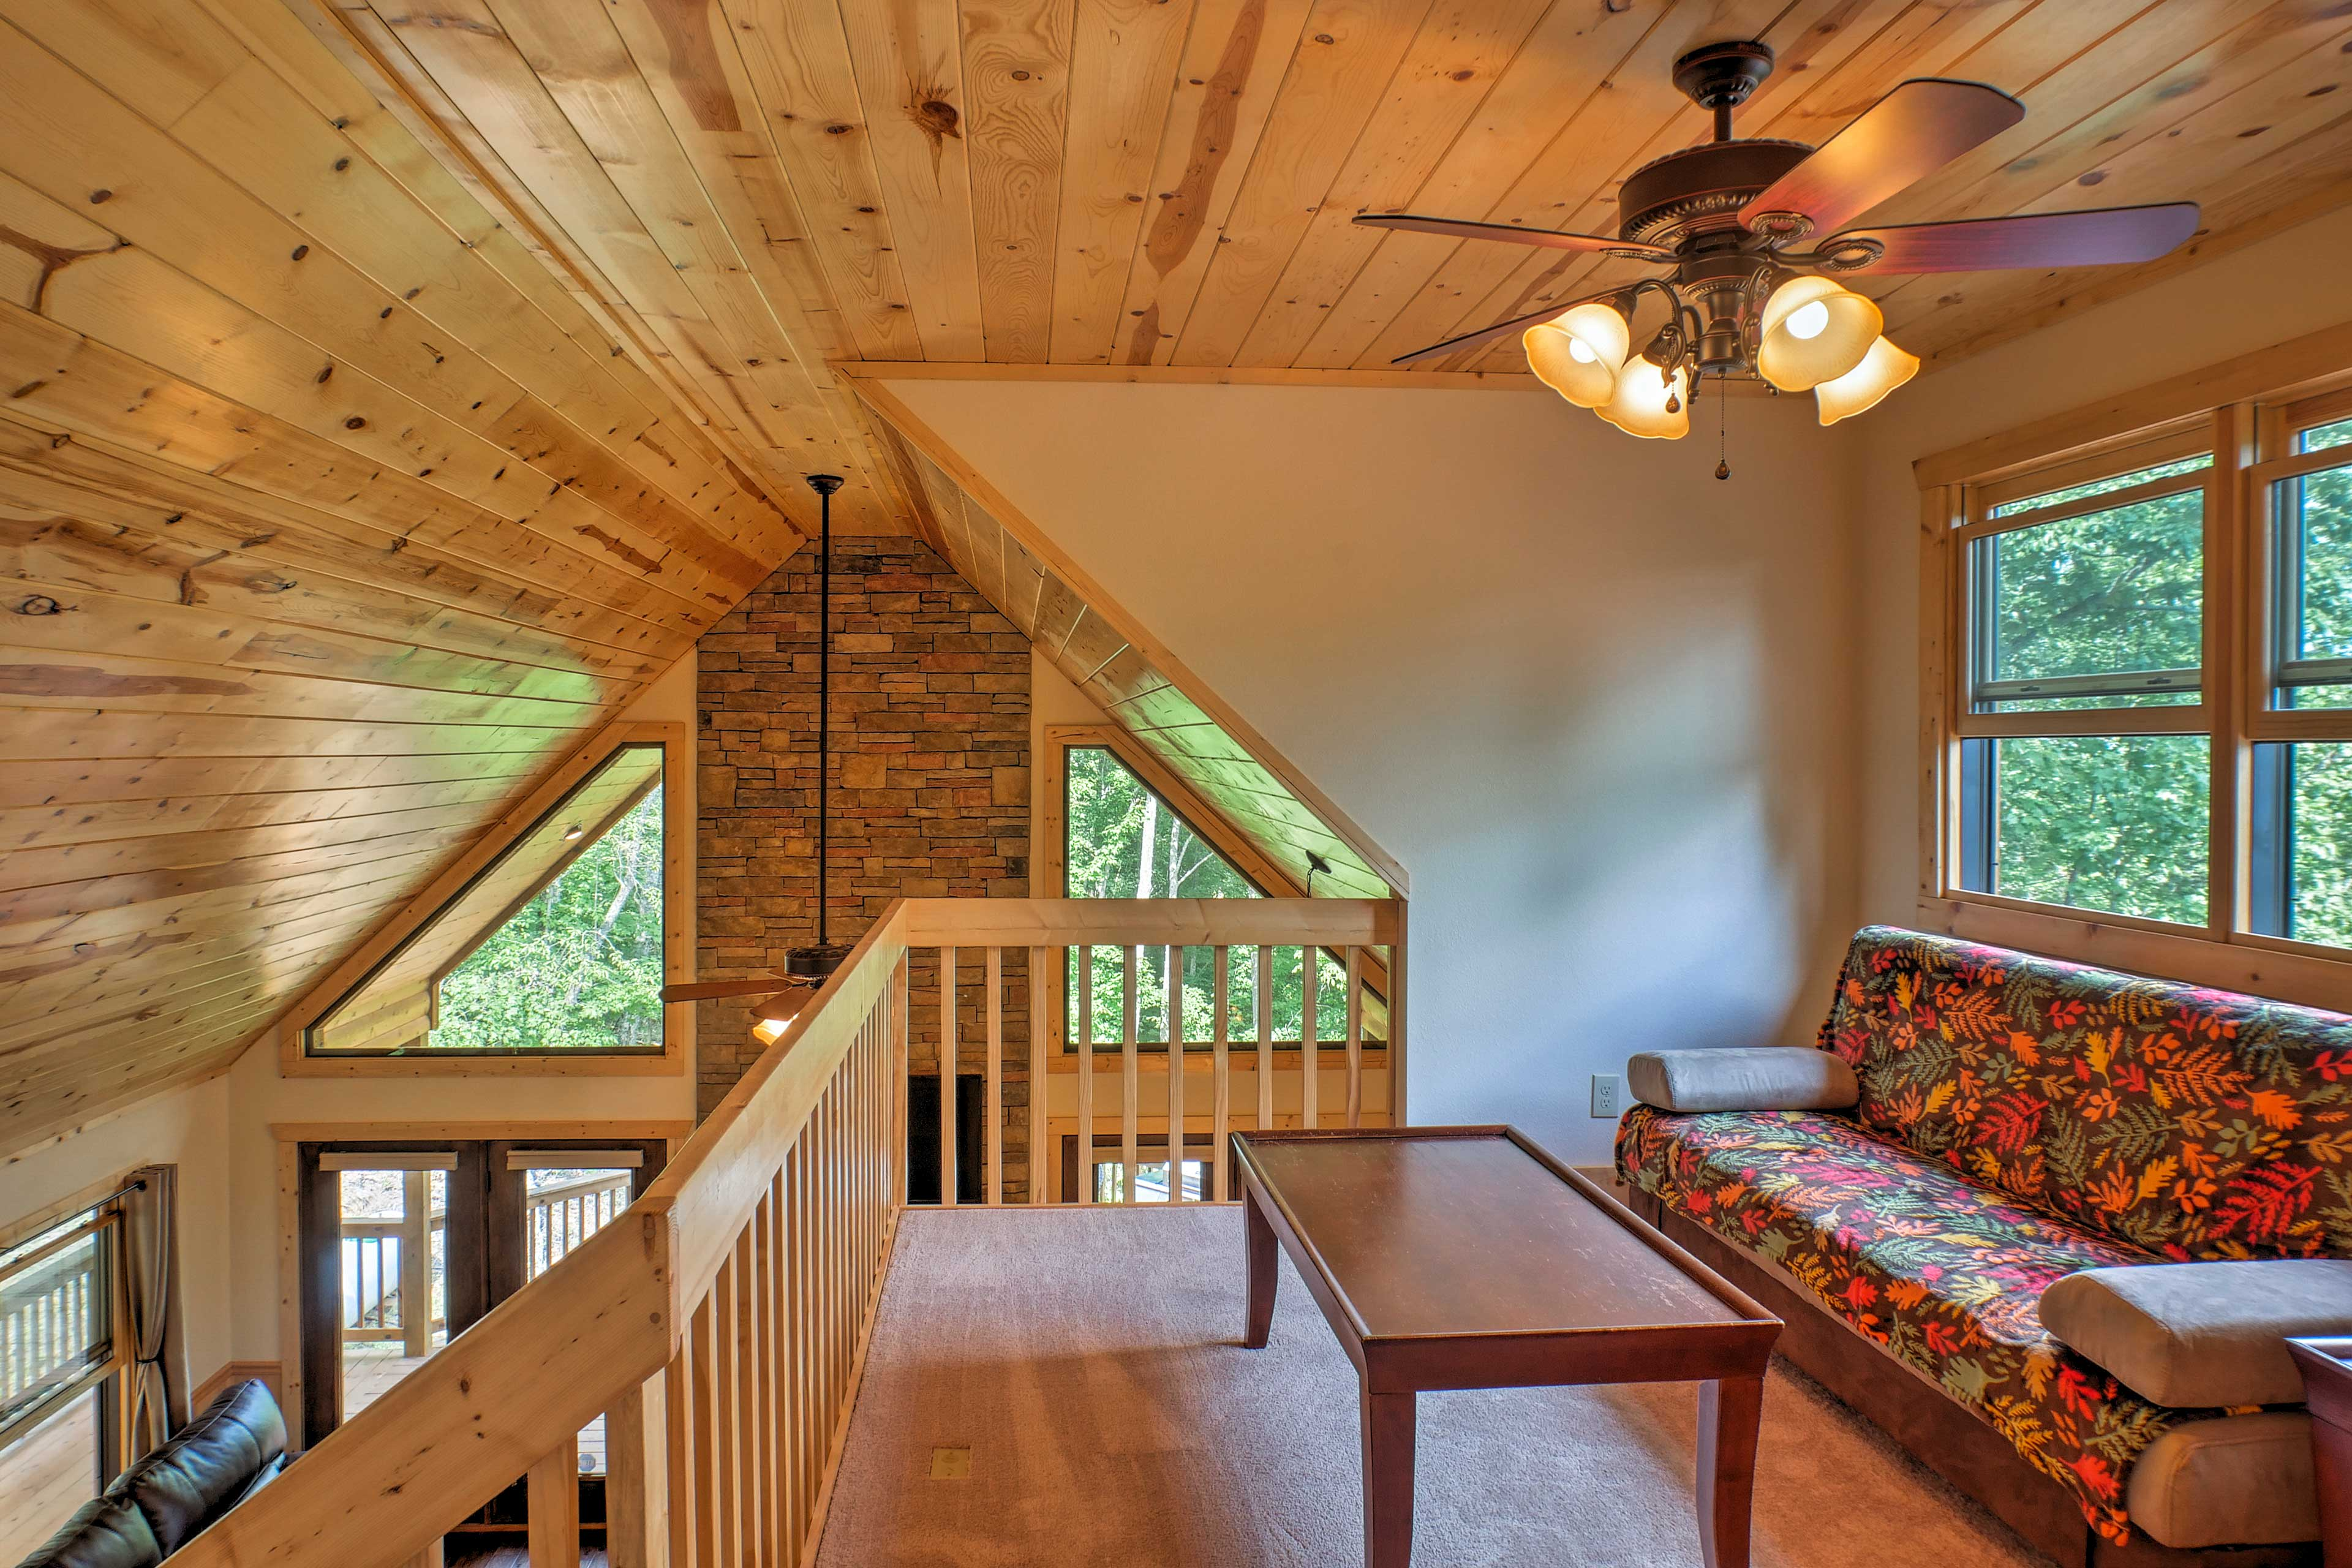 The loft offers a sleeper sofa to accommodate 1 adult or 2 children.